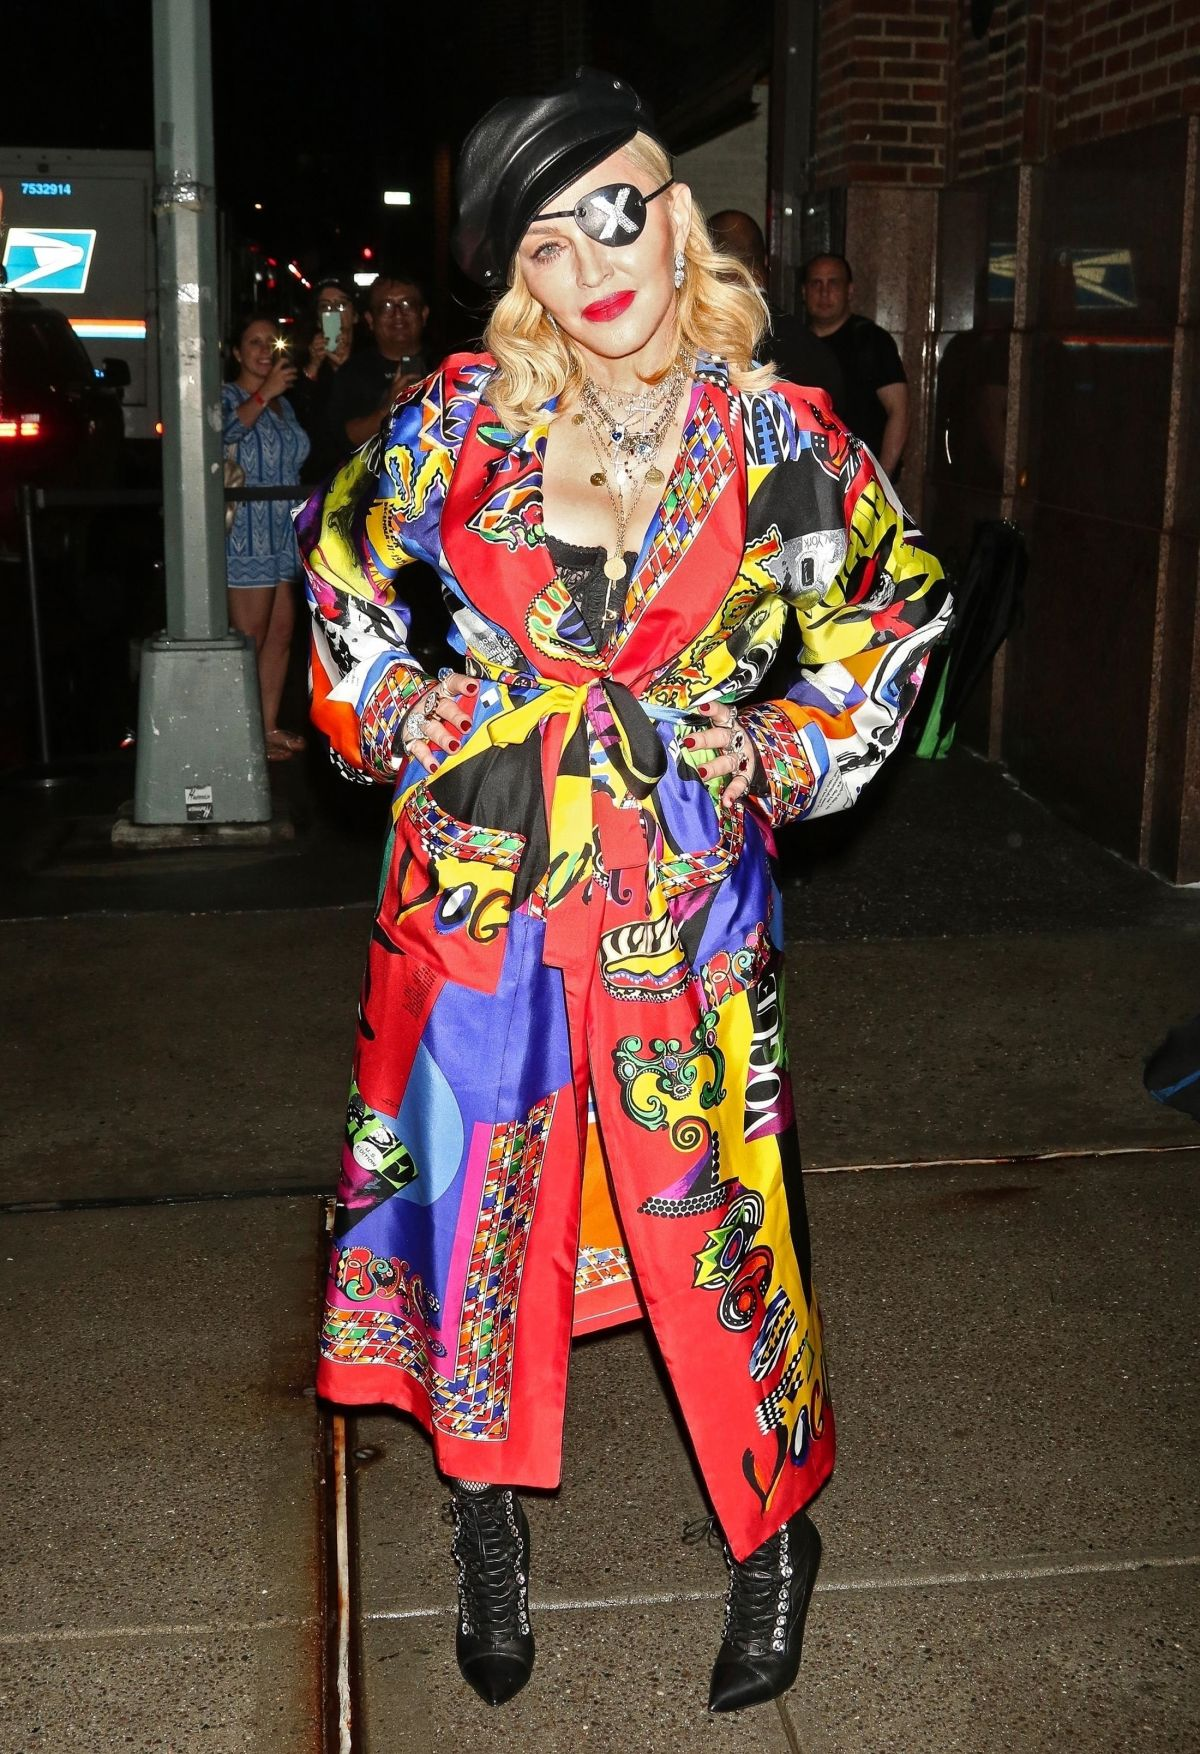 Madonna Promotes Her Madame X Album In New York 06 20 2019 Hawtcelebs